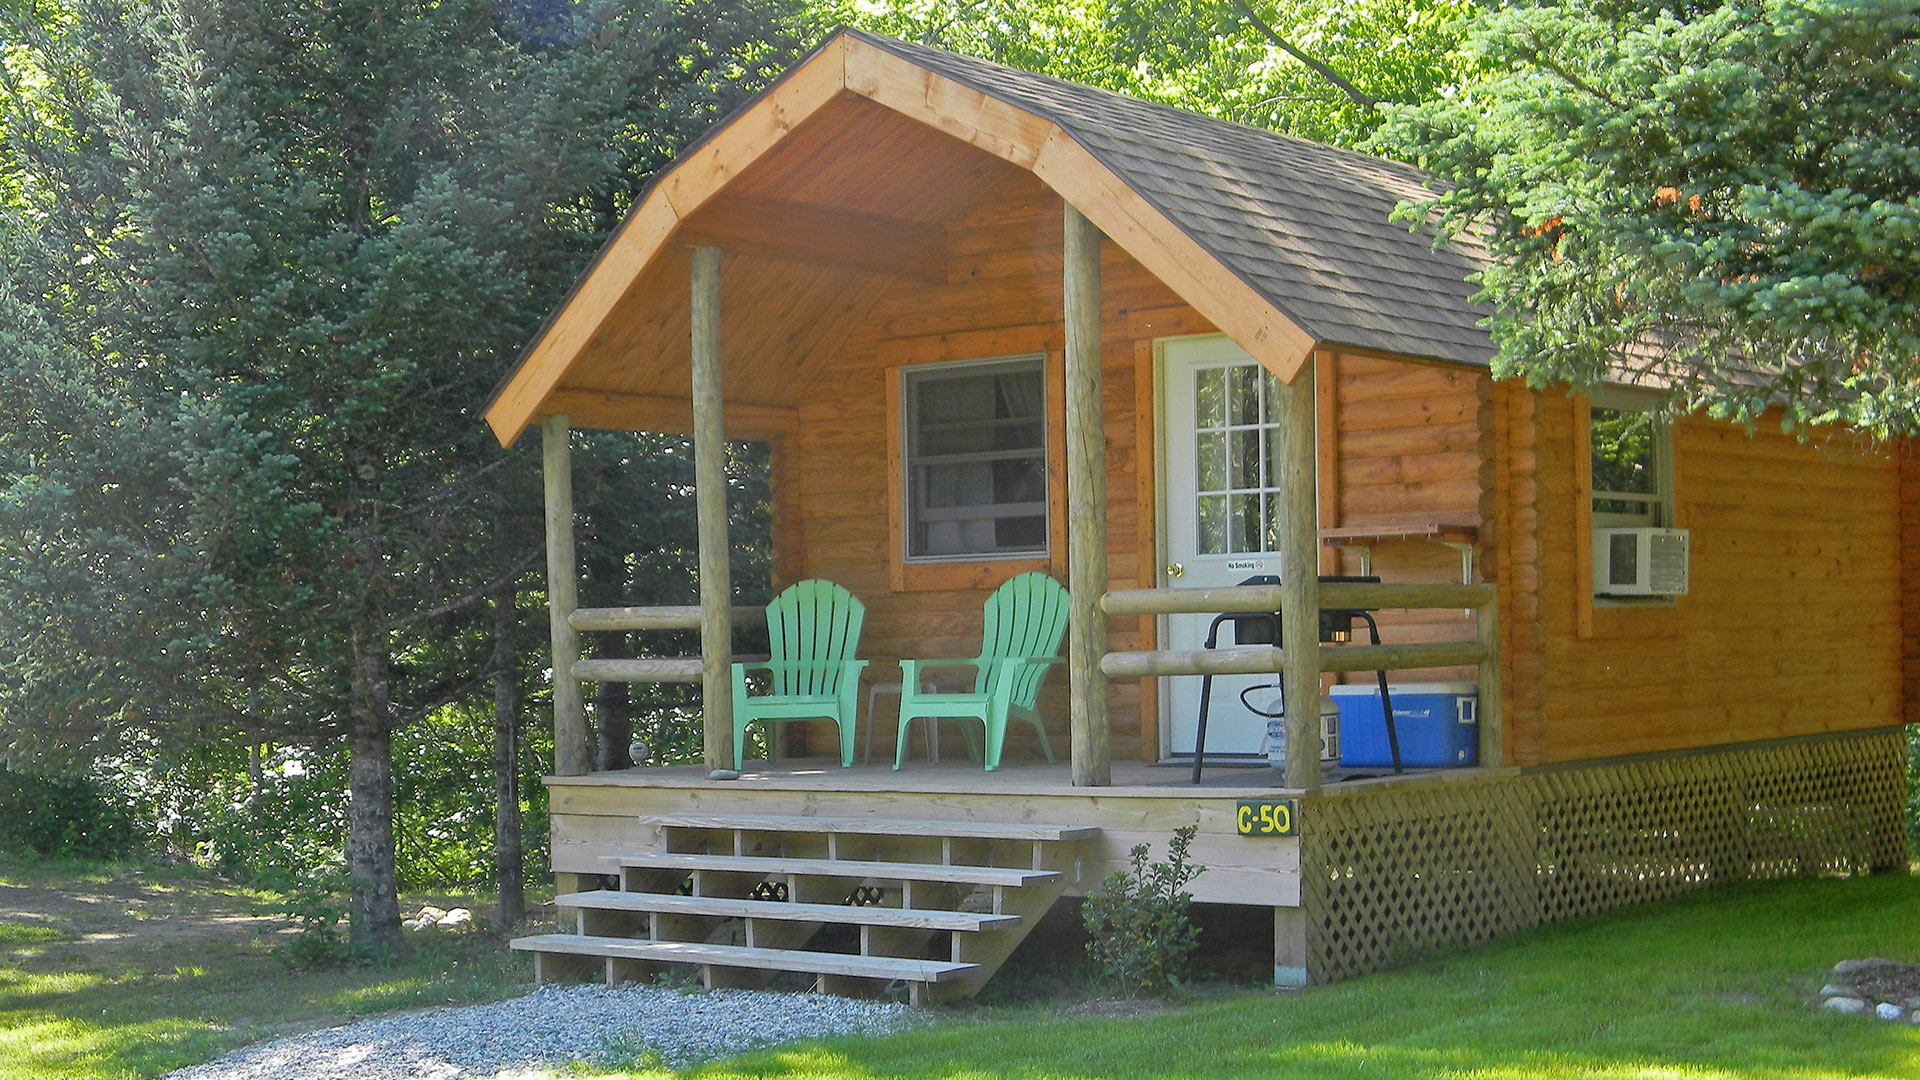 nh new rental cottages cottagerentals white and s in rentals cottage mountains cabin pierce for whitemountains rent vacation hampshire